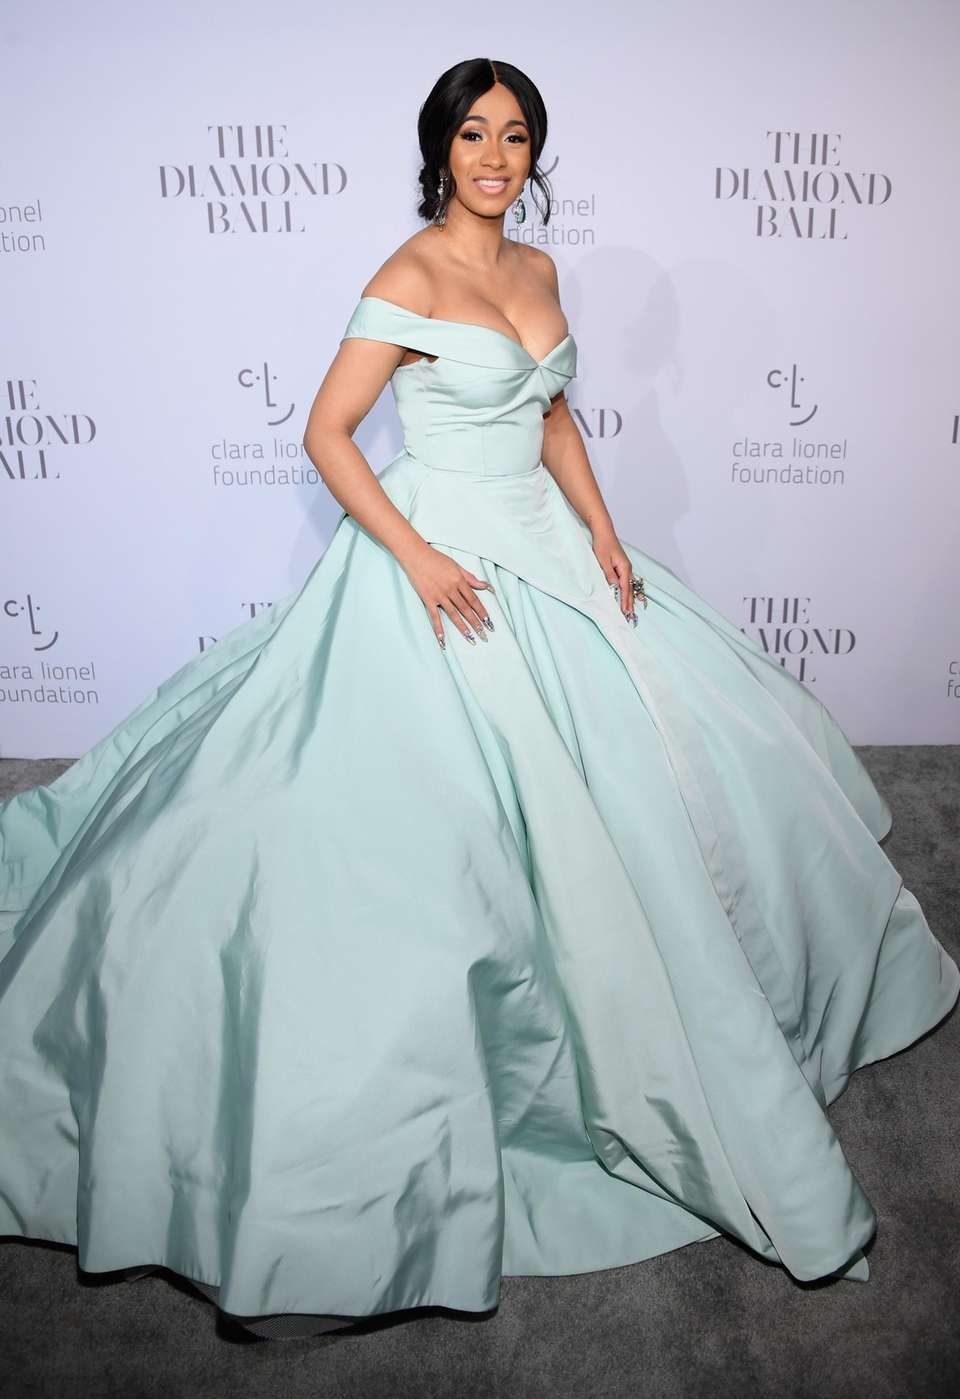 Cardi B attends Rihanna's third annual Diamond Ball